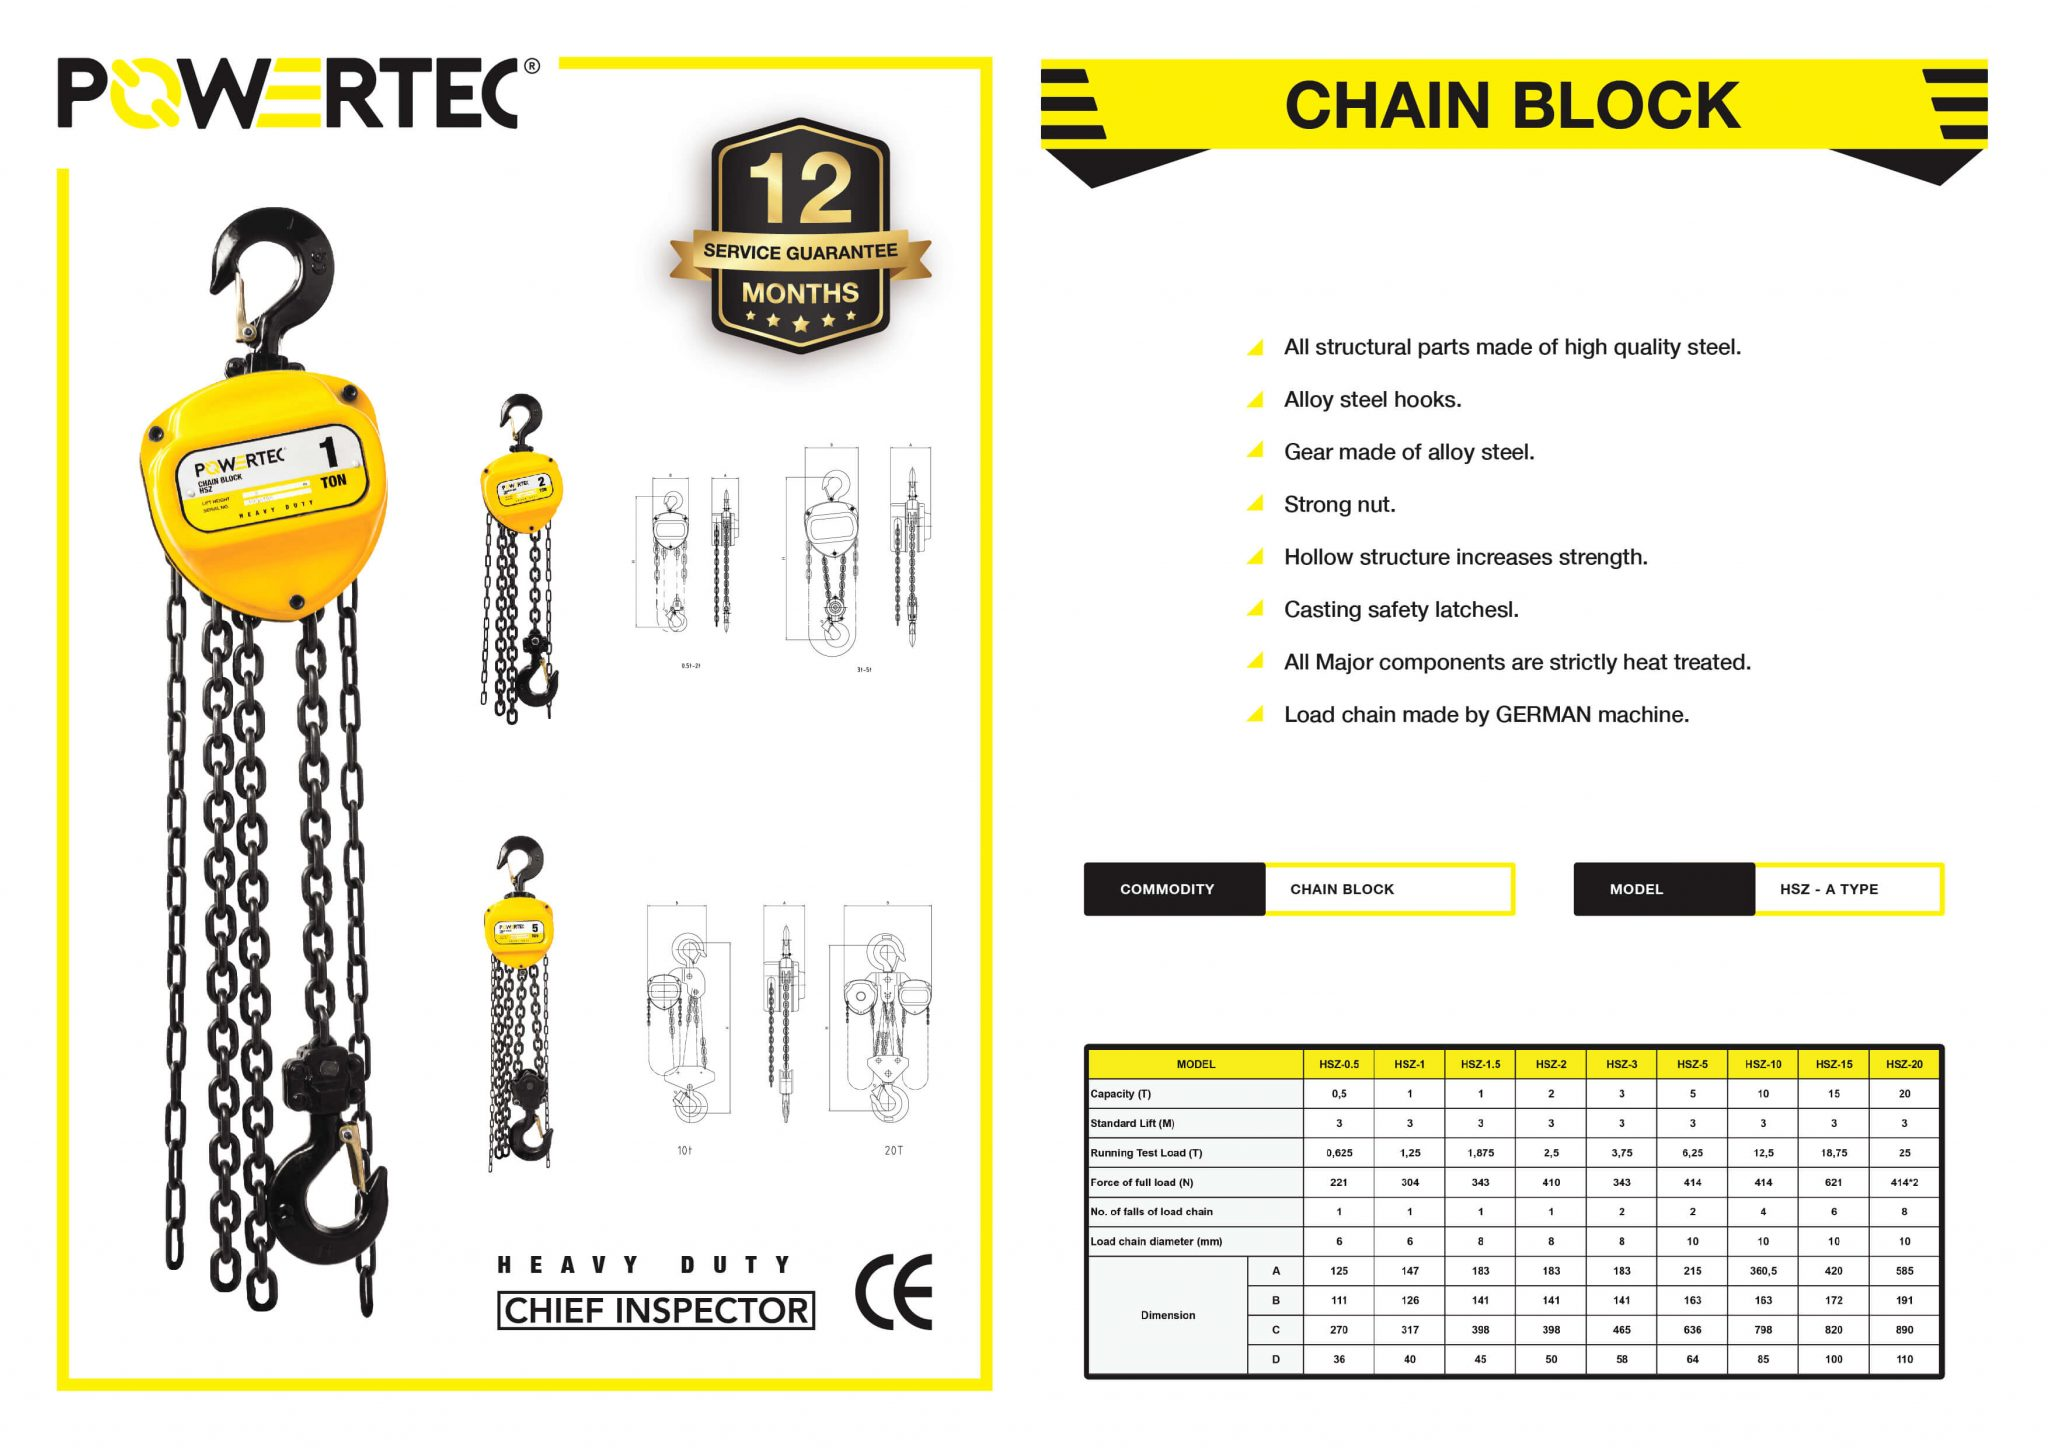 POWERTEC CHAIN BLOCK BROCHURE SPECIFICATION